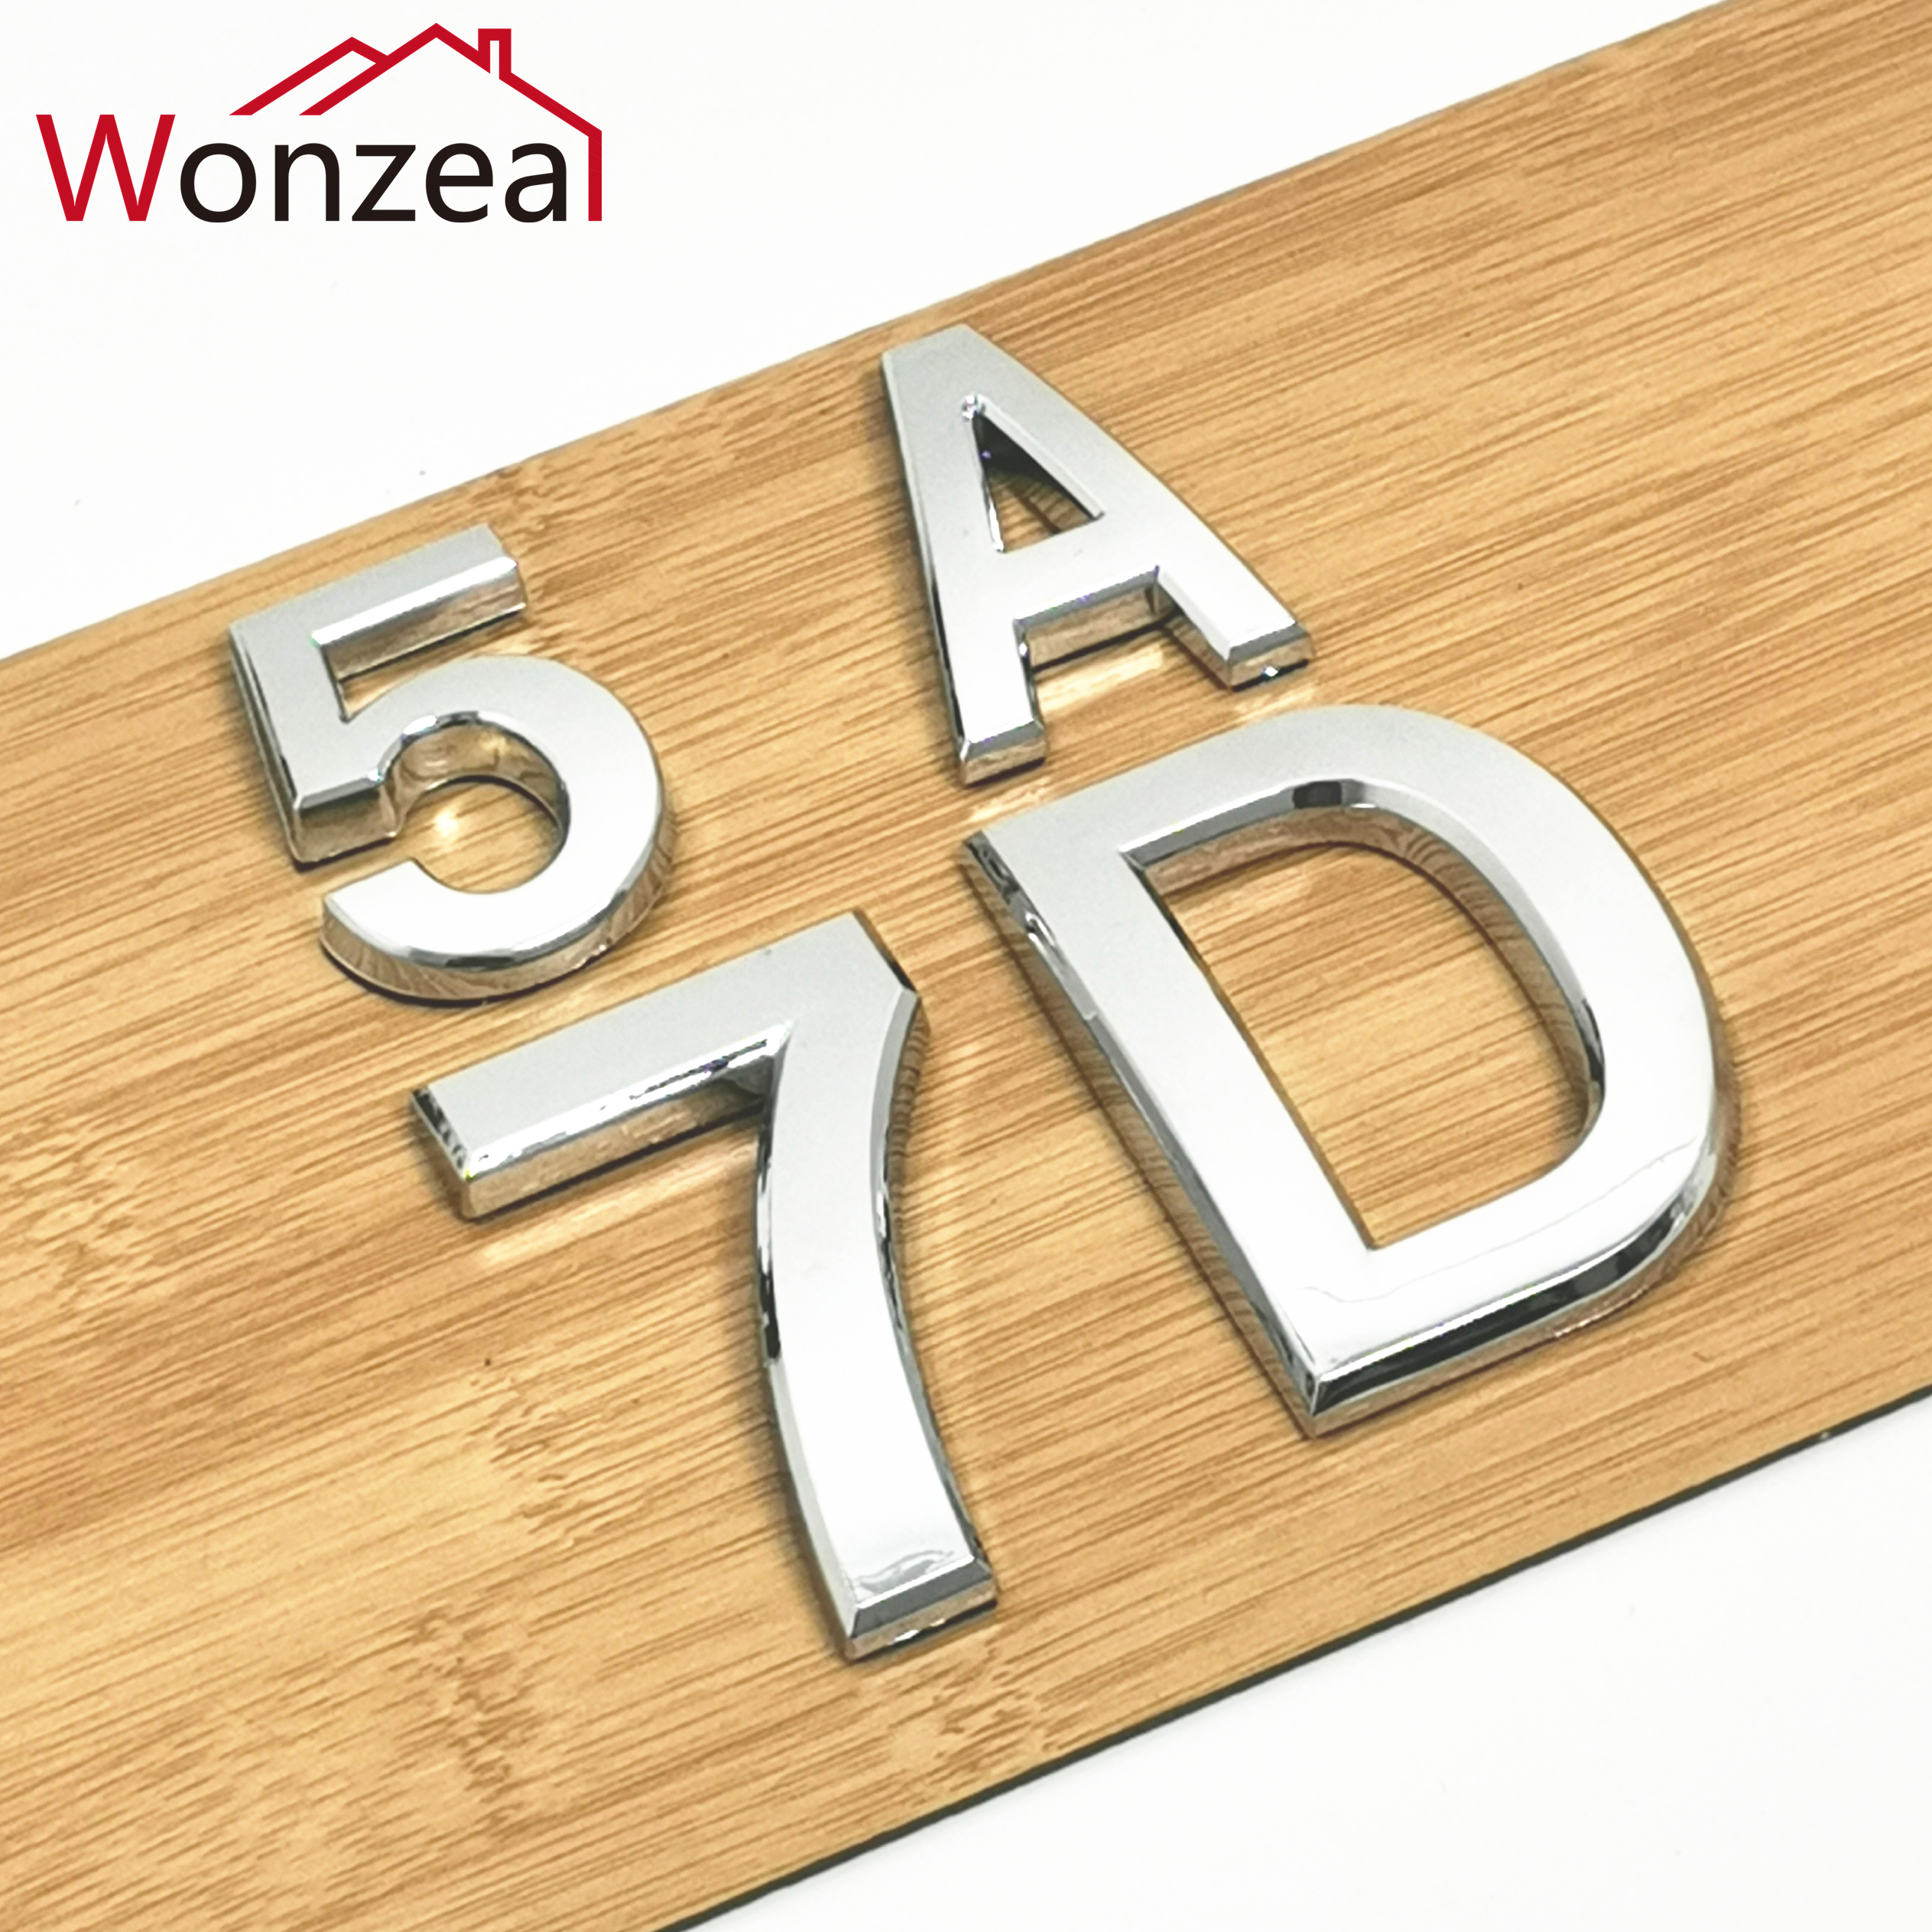 5cm/7cm 0123456789 A To Z Modern Silver Plaque Number House Hotel Door Address Digits Sticker Plate Sign ABS Plastic